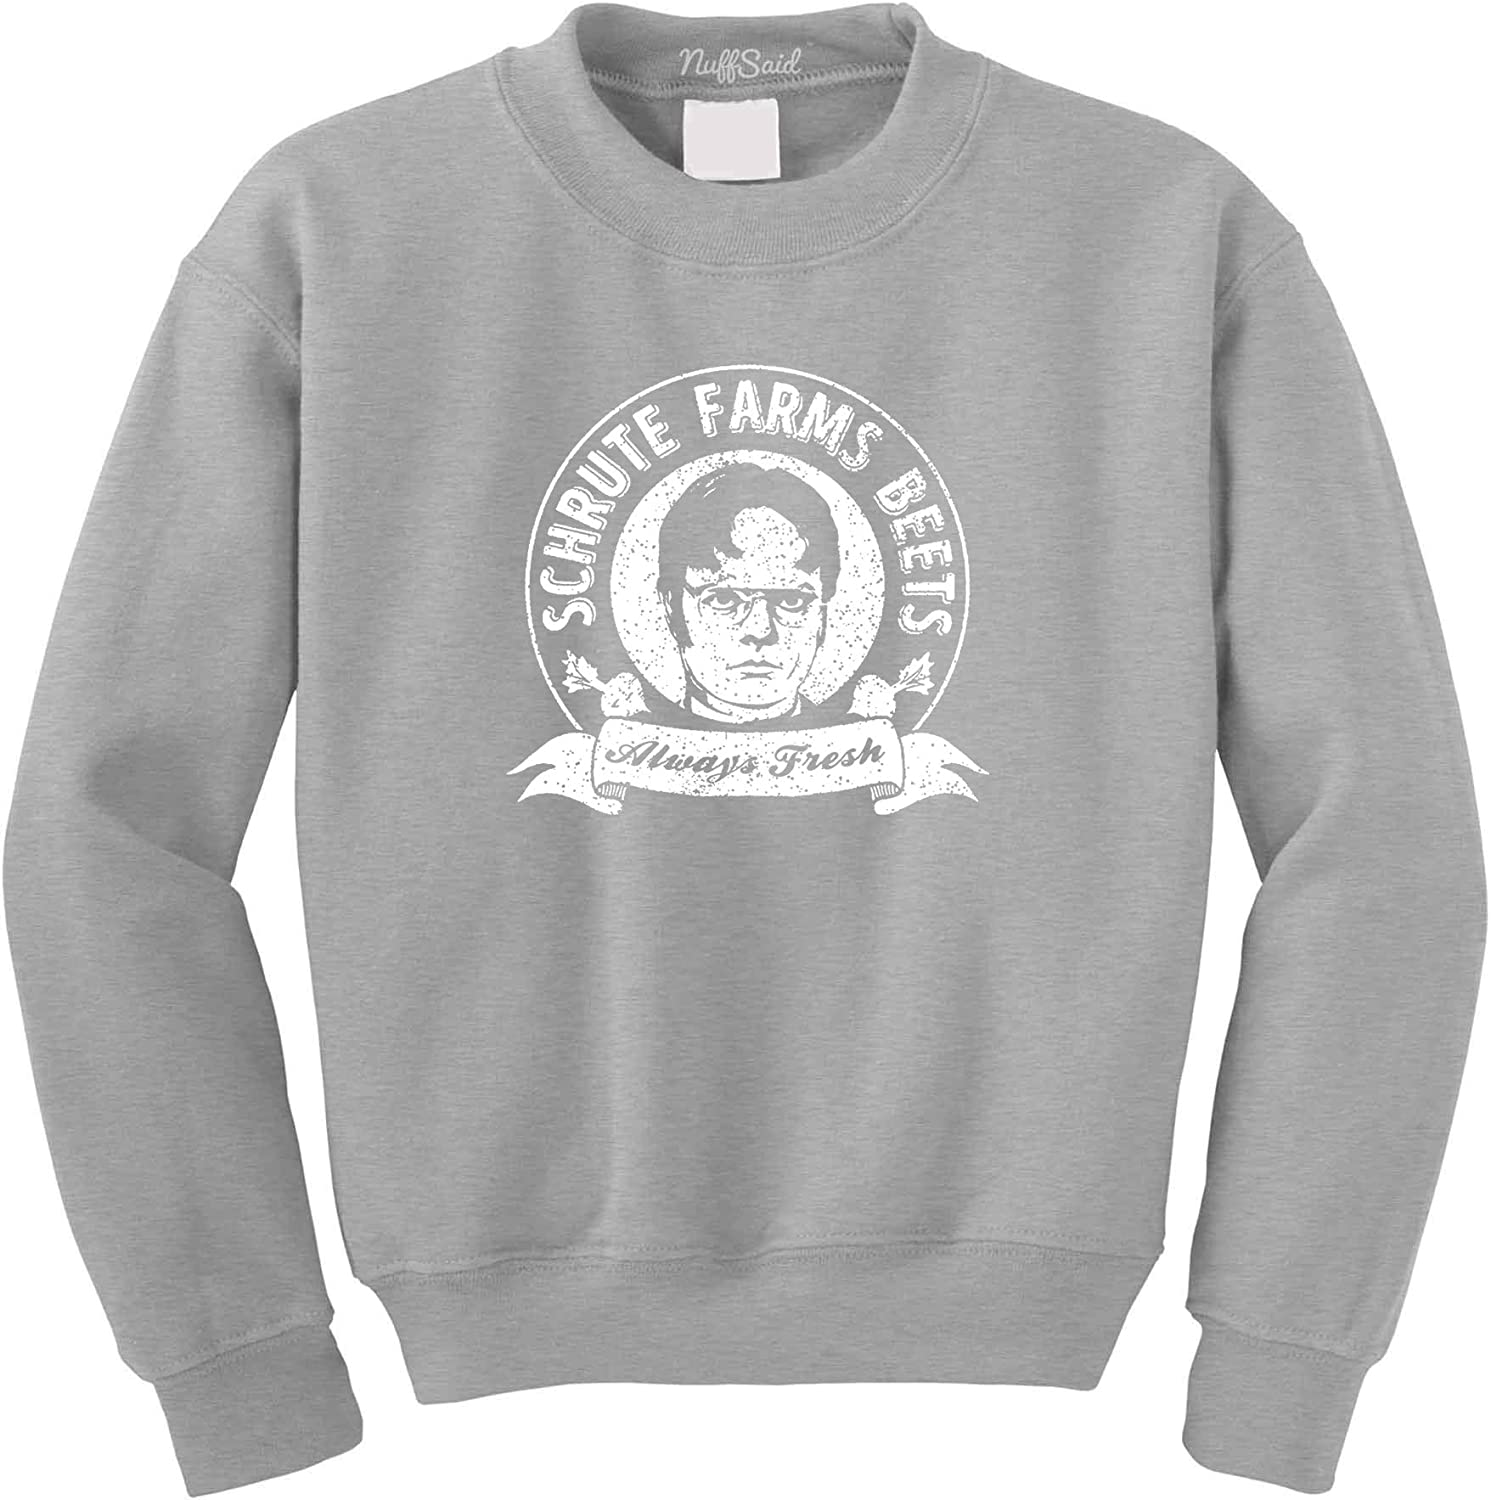 NuffSaid Schrute Farms Beets Always Fresh Crewneck Sweatshirt Sweater Pullover Unisex Crew